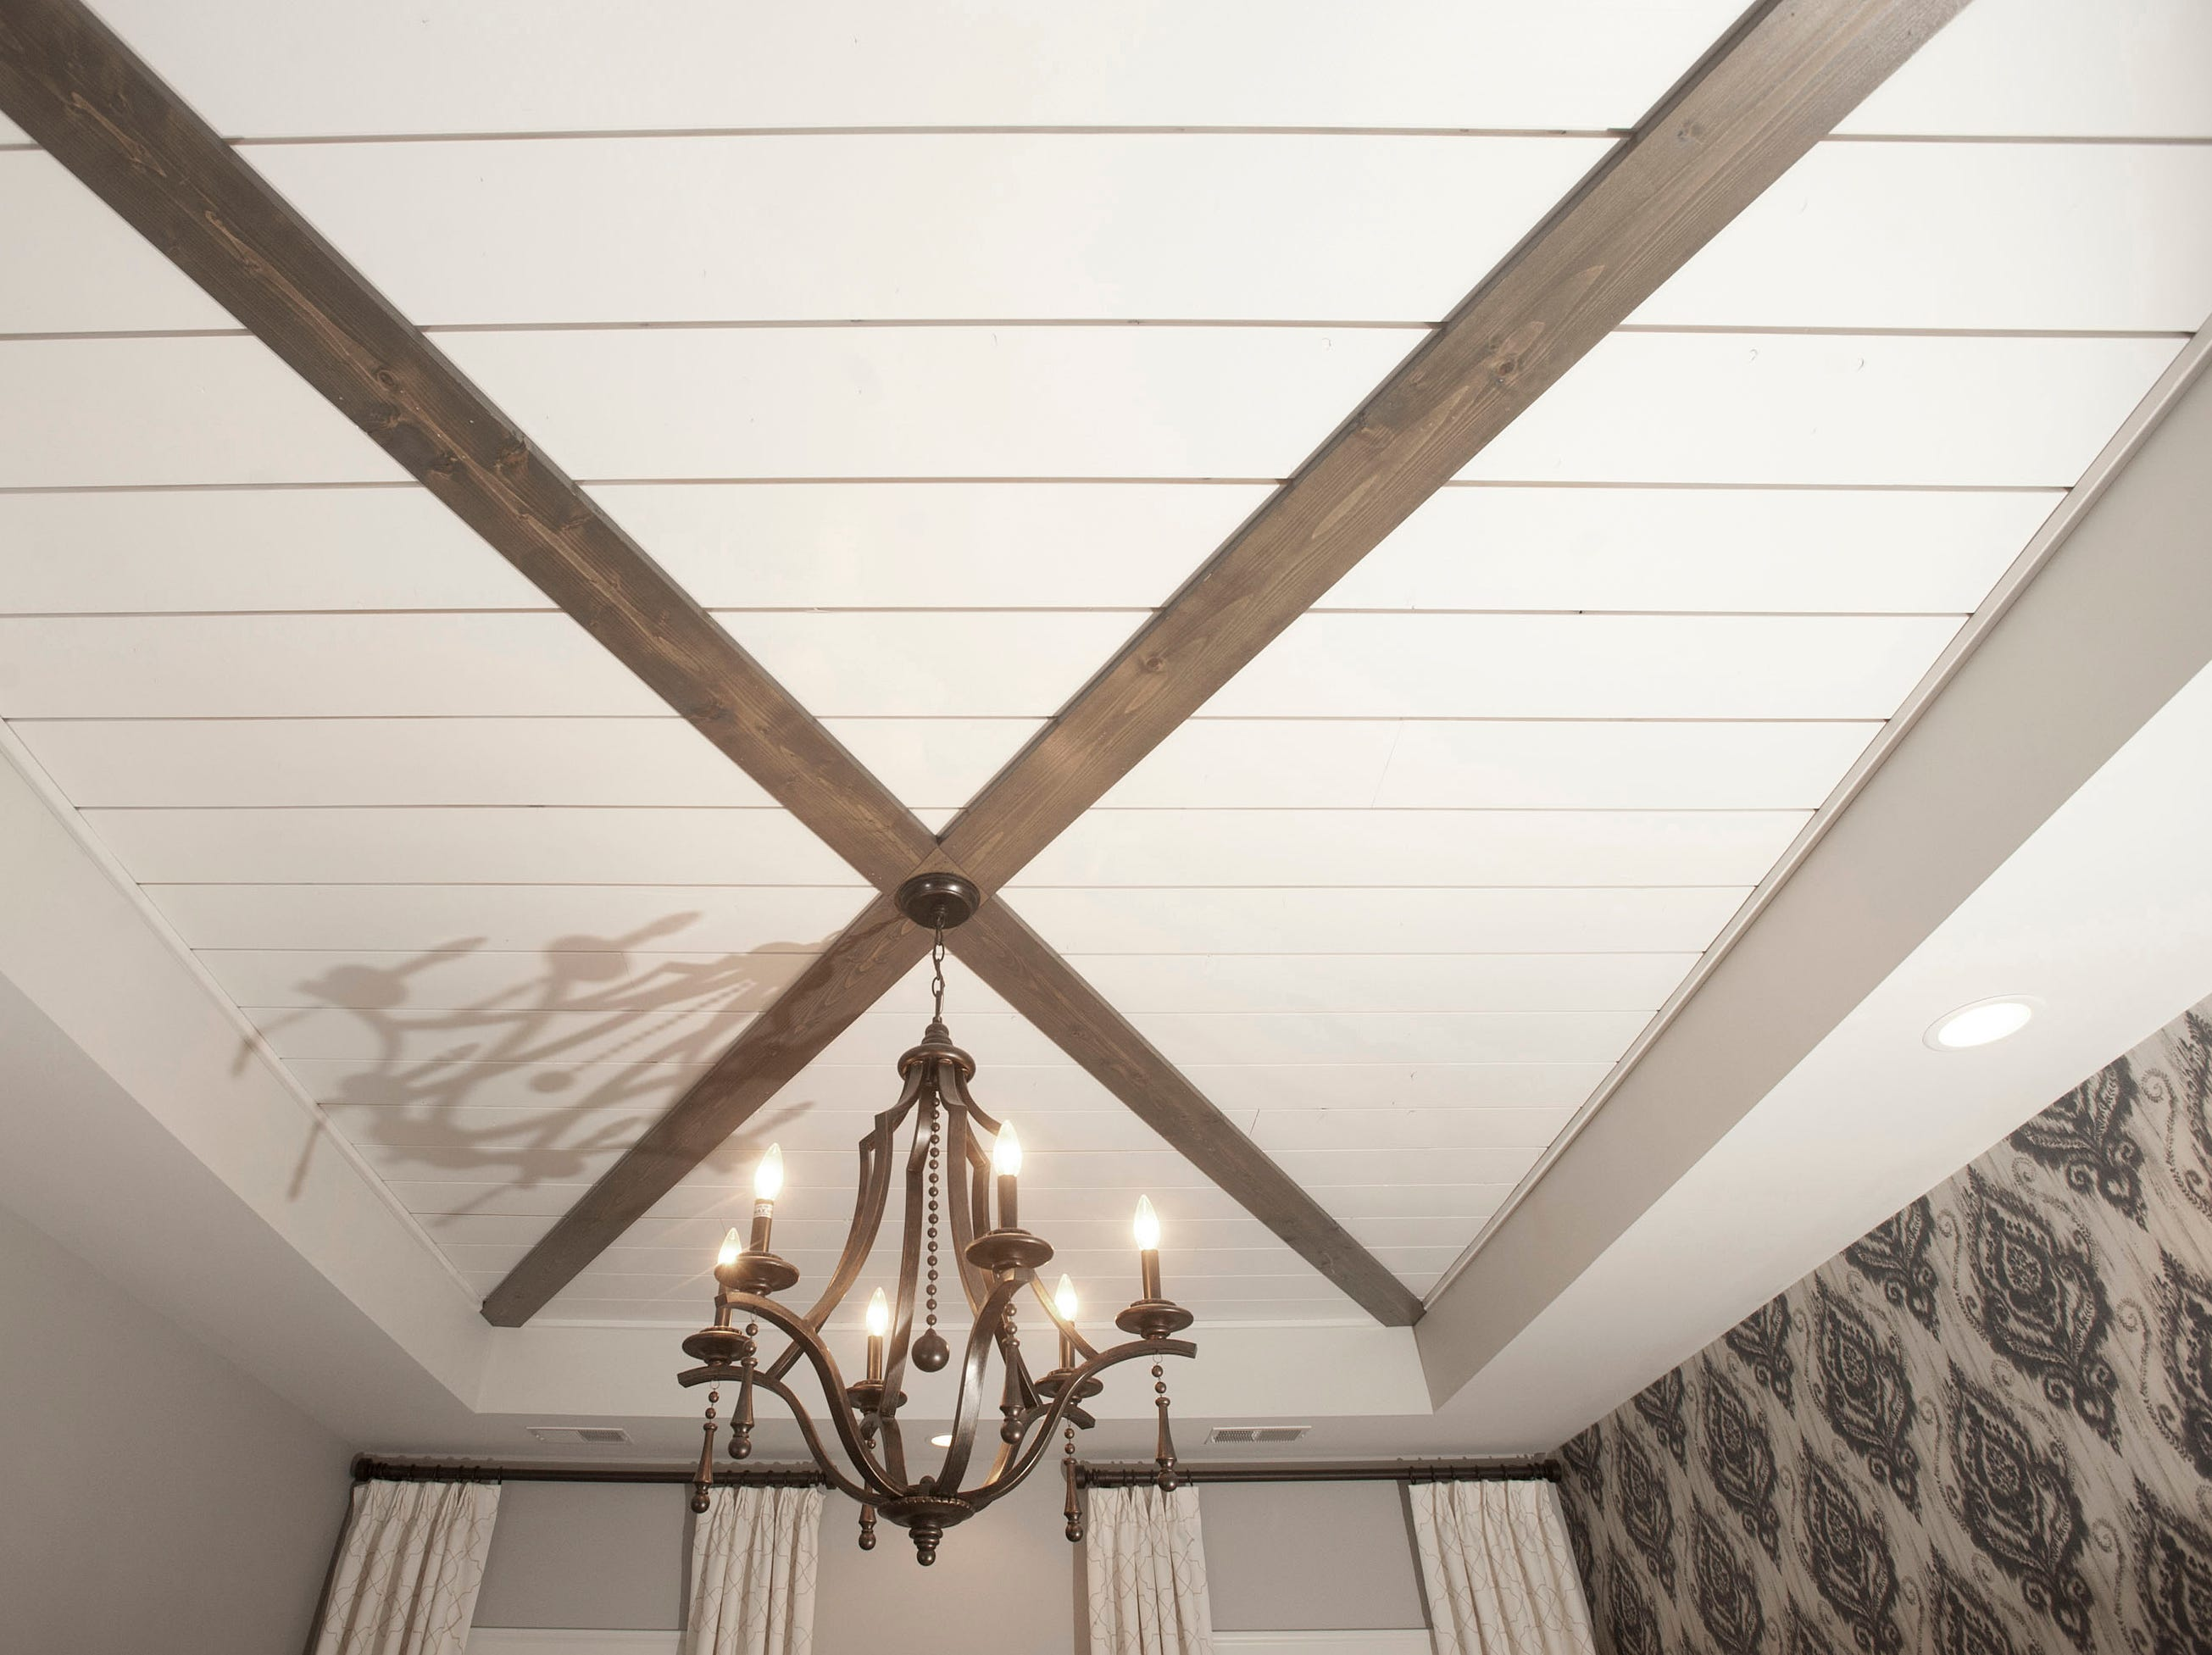 The Hannah master bedroom on the 2nd floor features a shiplapped trey ceiling with decorative wood crossbeams.01 March 2019